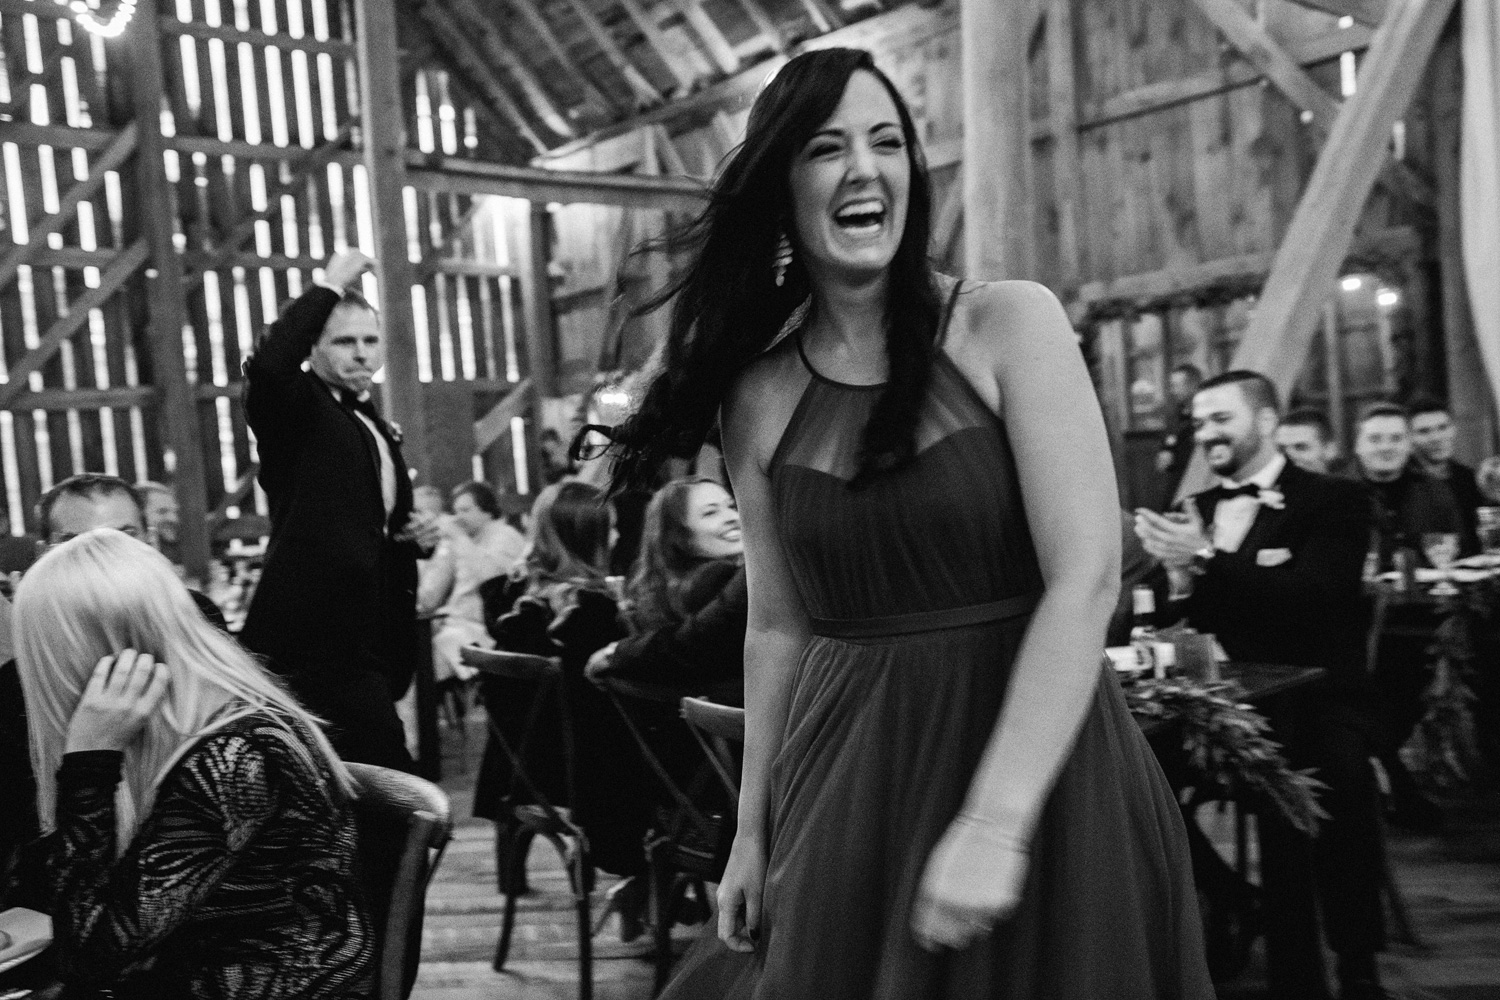 Fall Wedding at Birch Hill Barn capture by Geneoh Photography